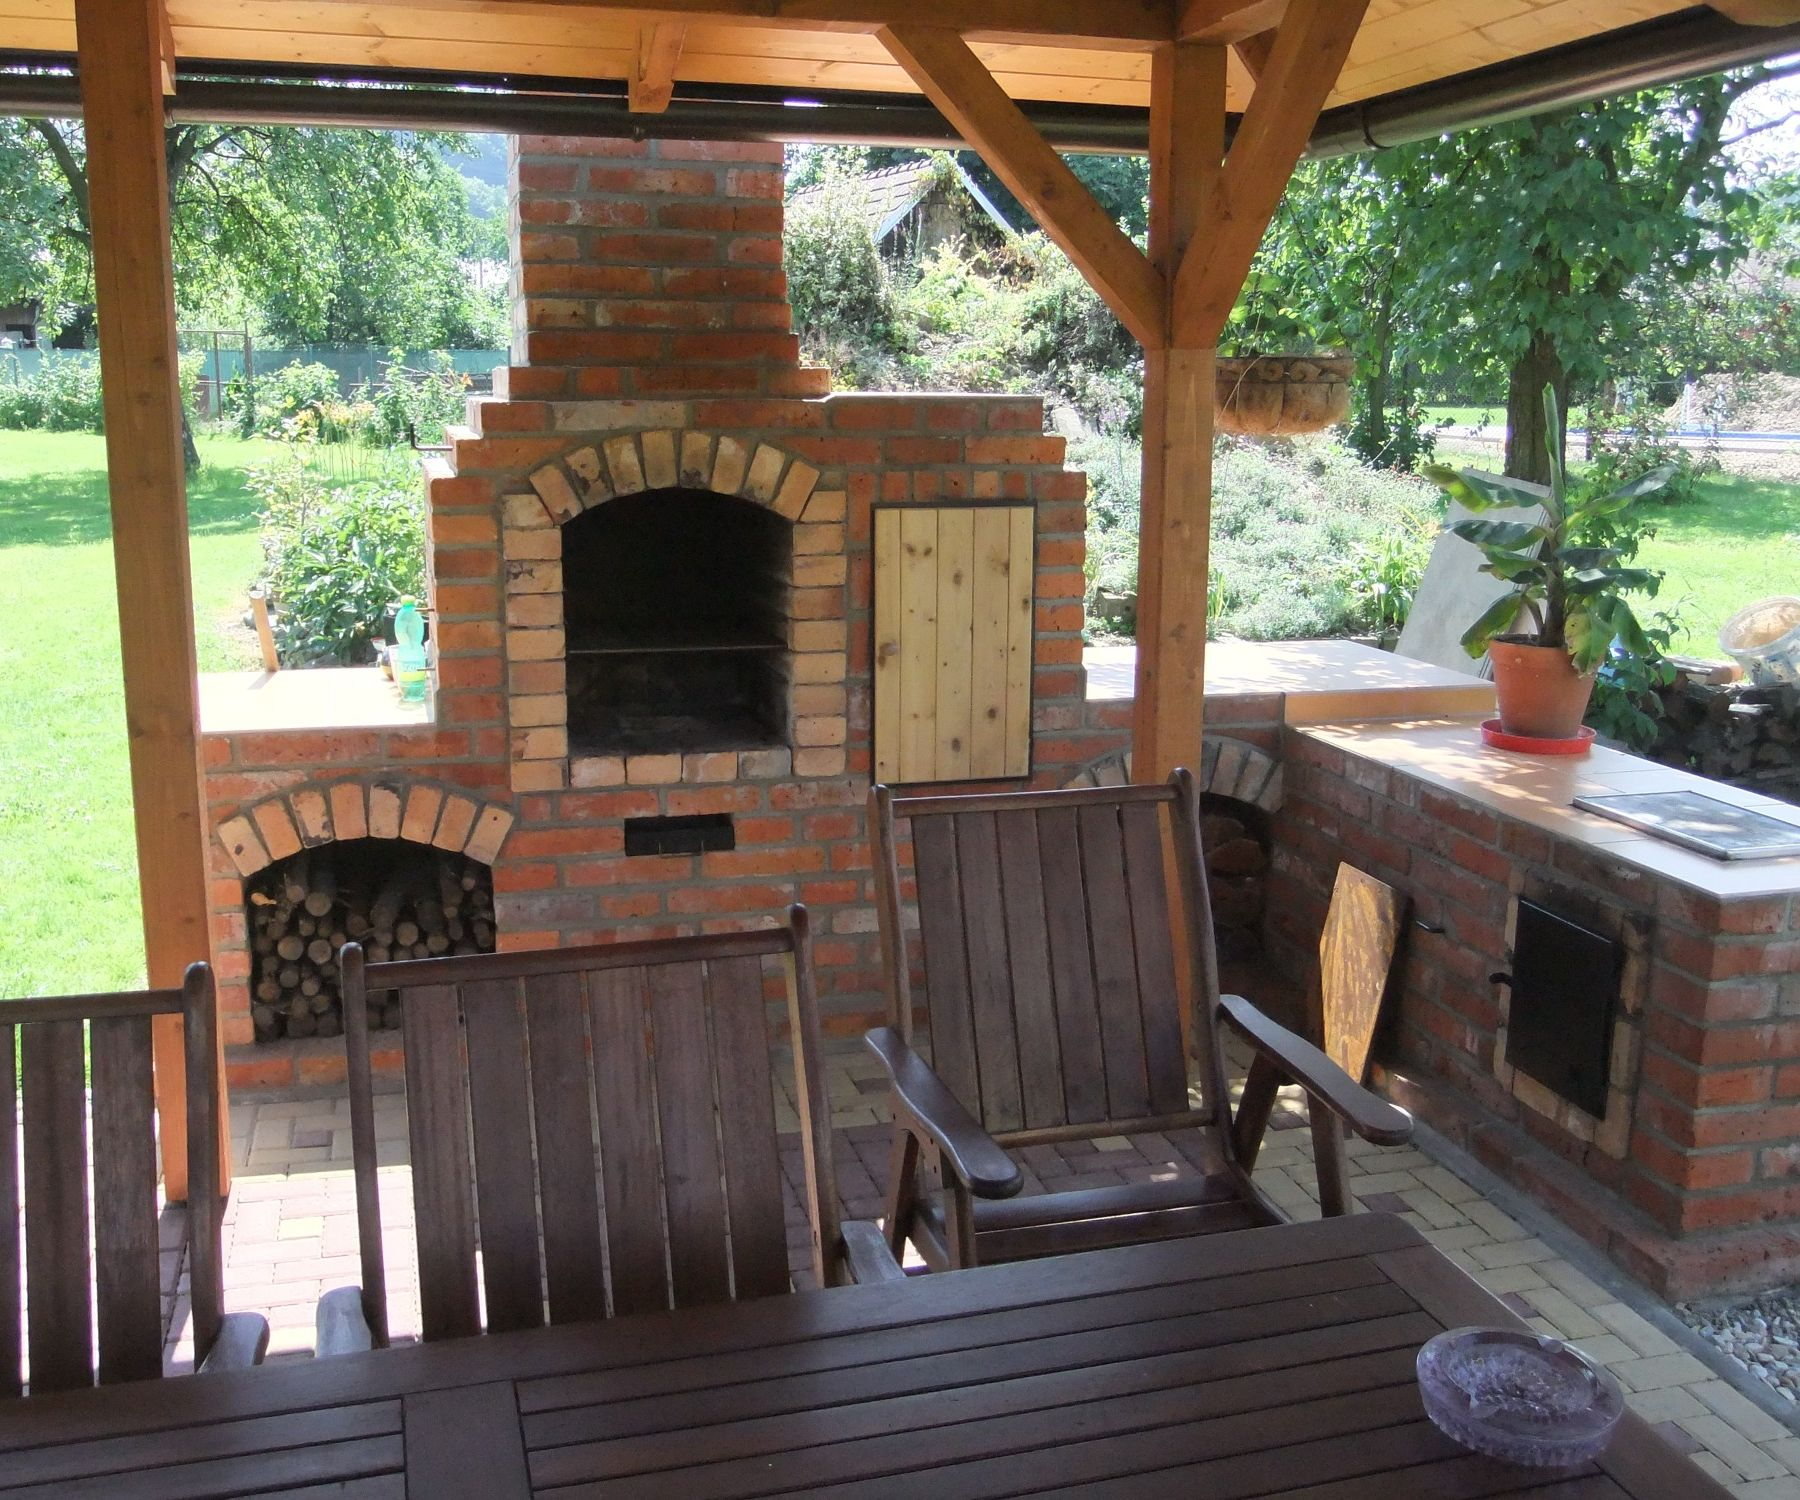 Brick Outdoor Kitchen: DIY Outdoor Fireplace With BBQ Grill /brick/